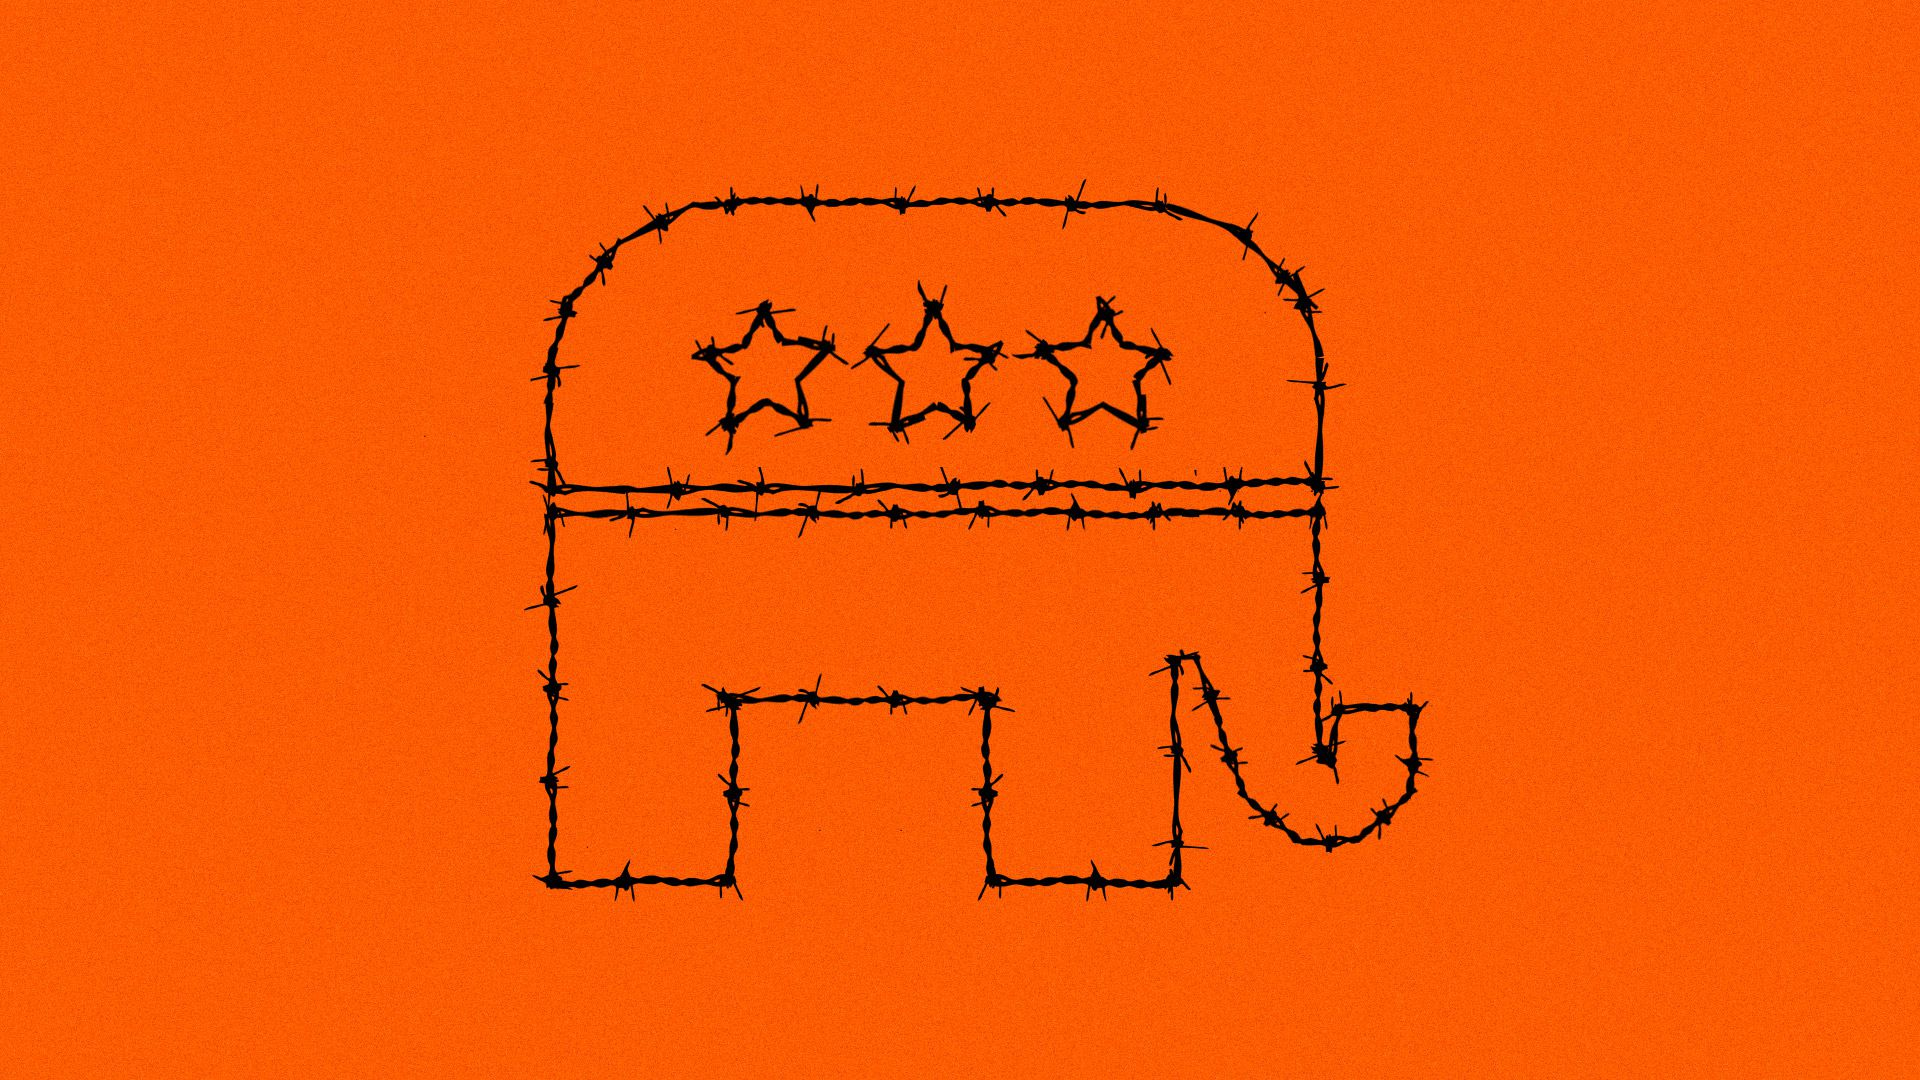 A GOP elephant symbol made of barbed wire